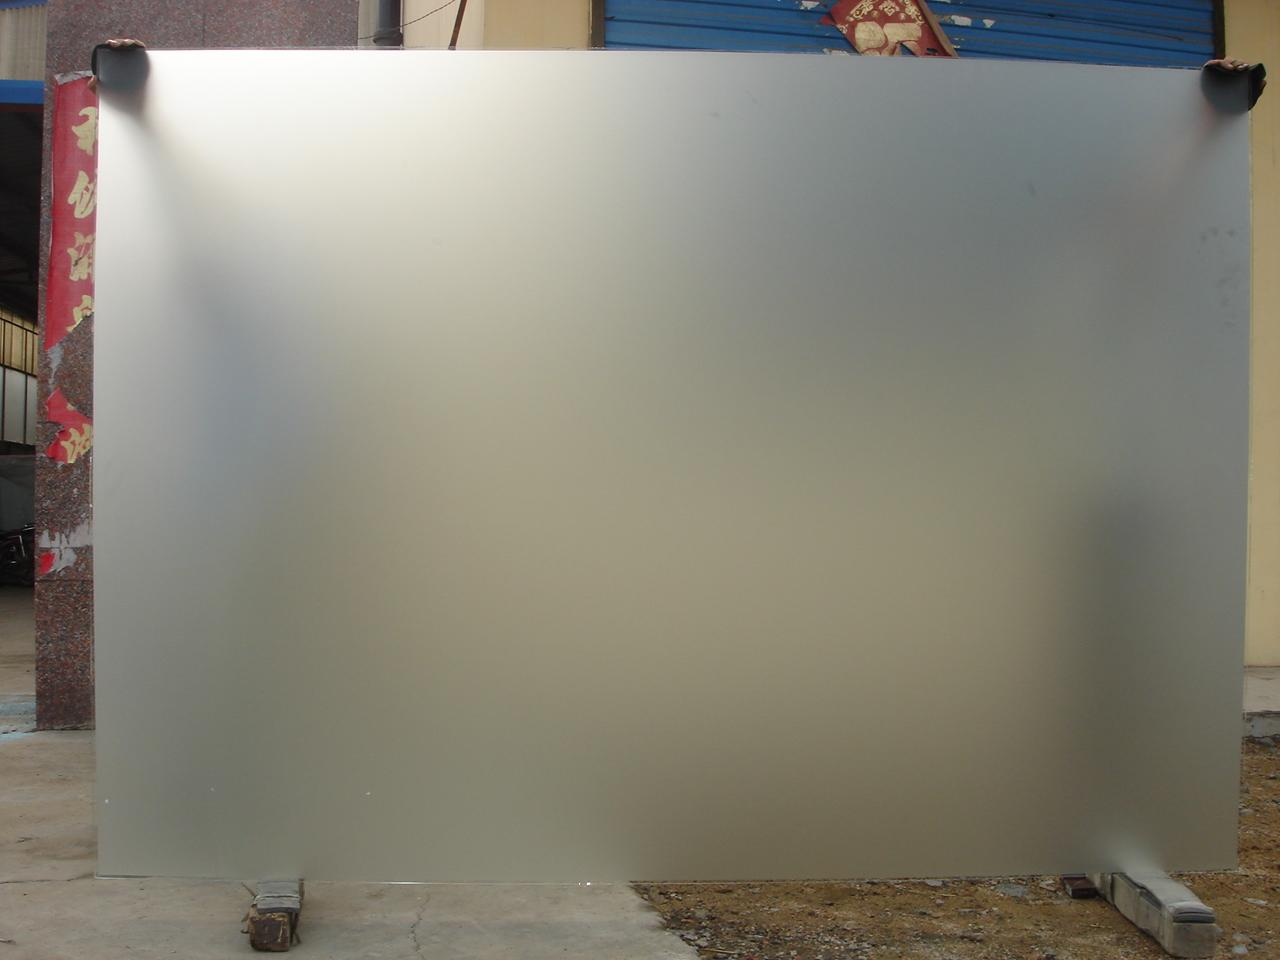 Frosted Glass Whiteboard1326793281